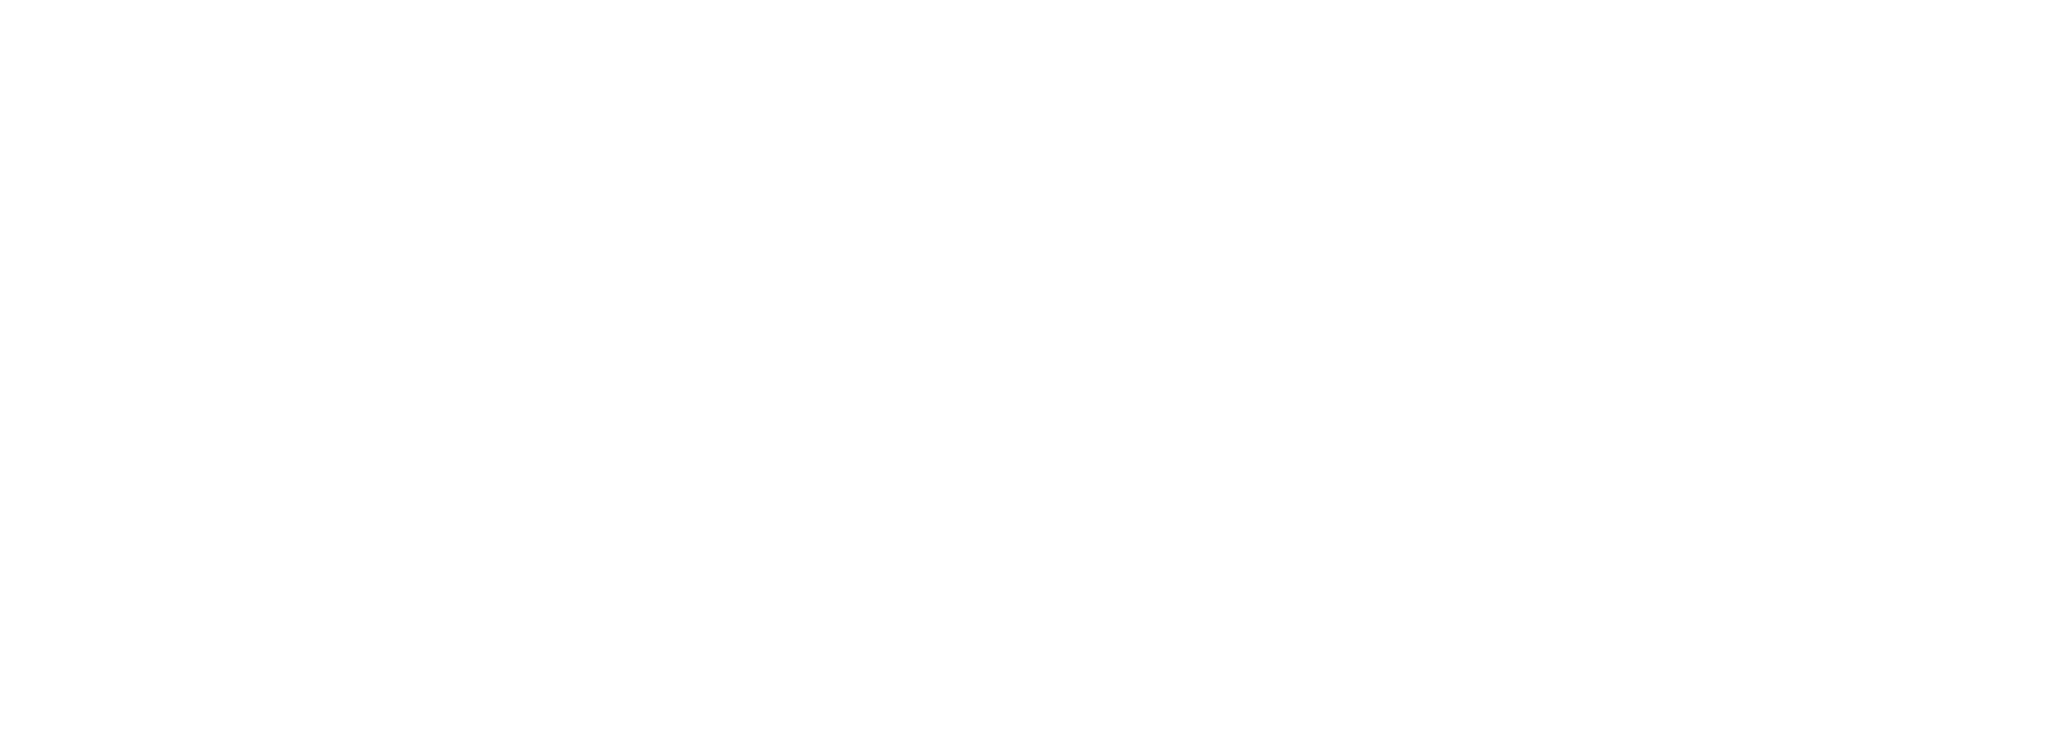 Hacking Math | The worlds fastest way to learn mathematics.